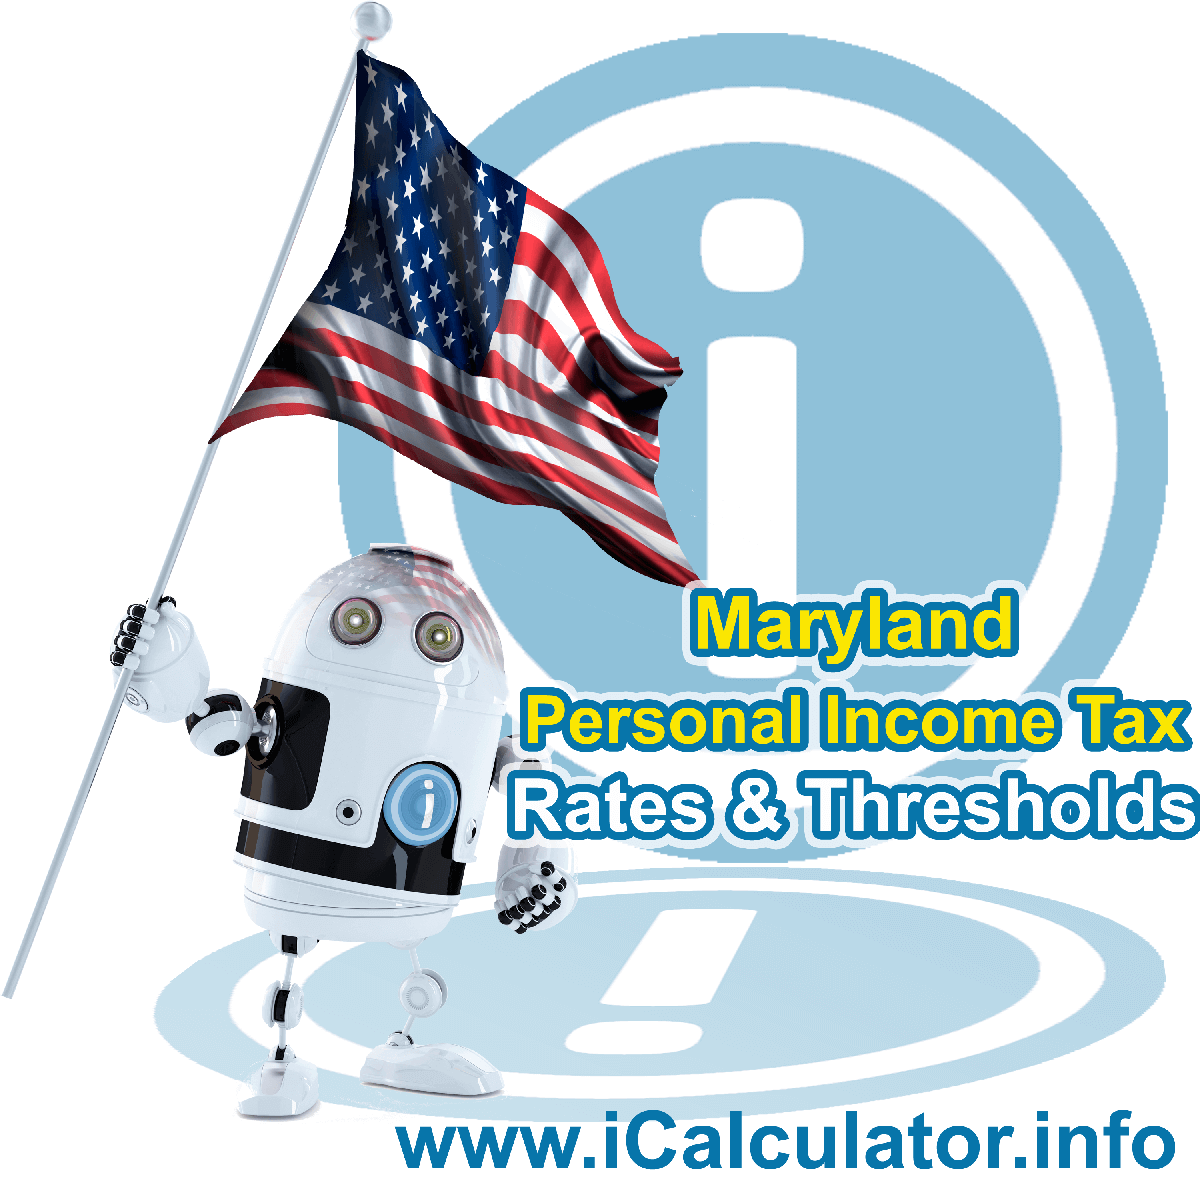 Maryland State Tax Tables 2018. This image displays details of the Maryland State Tax Tables for the 2018 tax return year which is provided in support of the 2018 US Tax Calculator